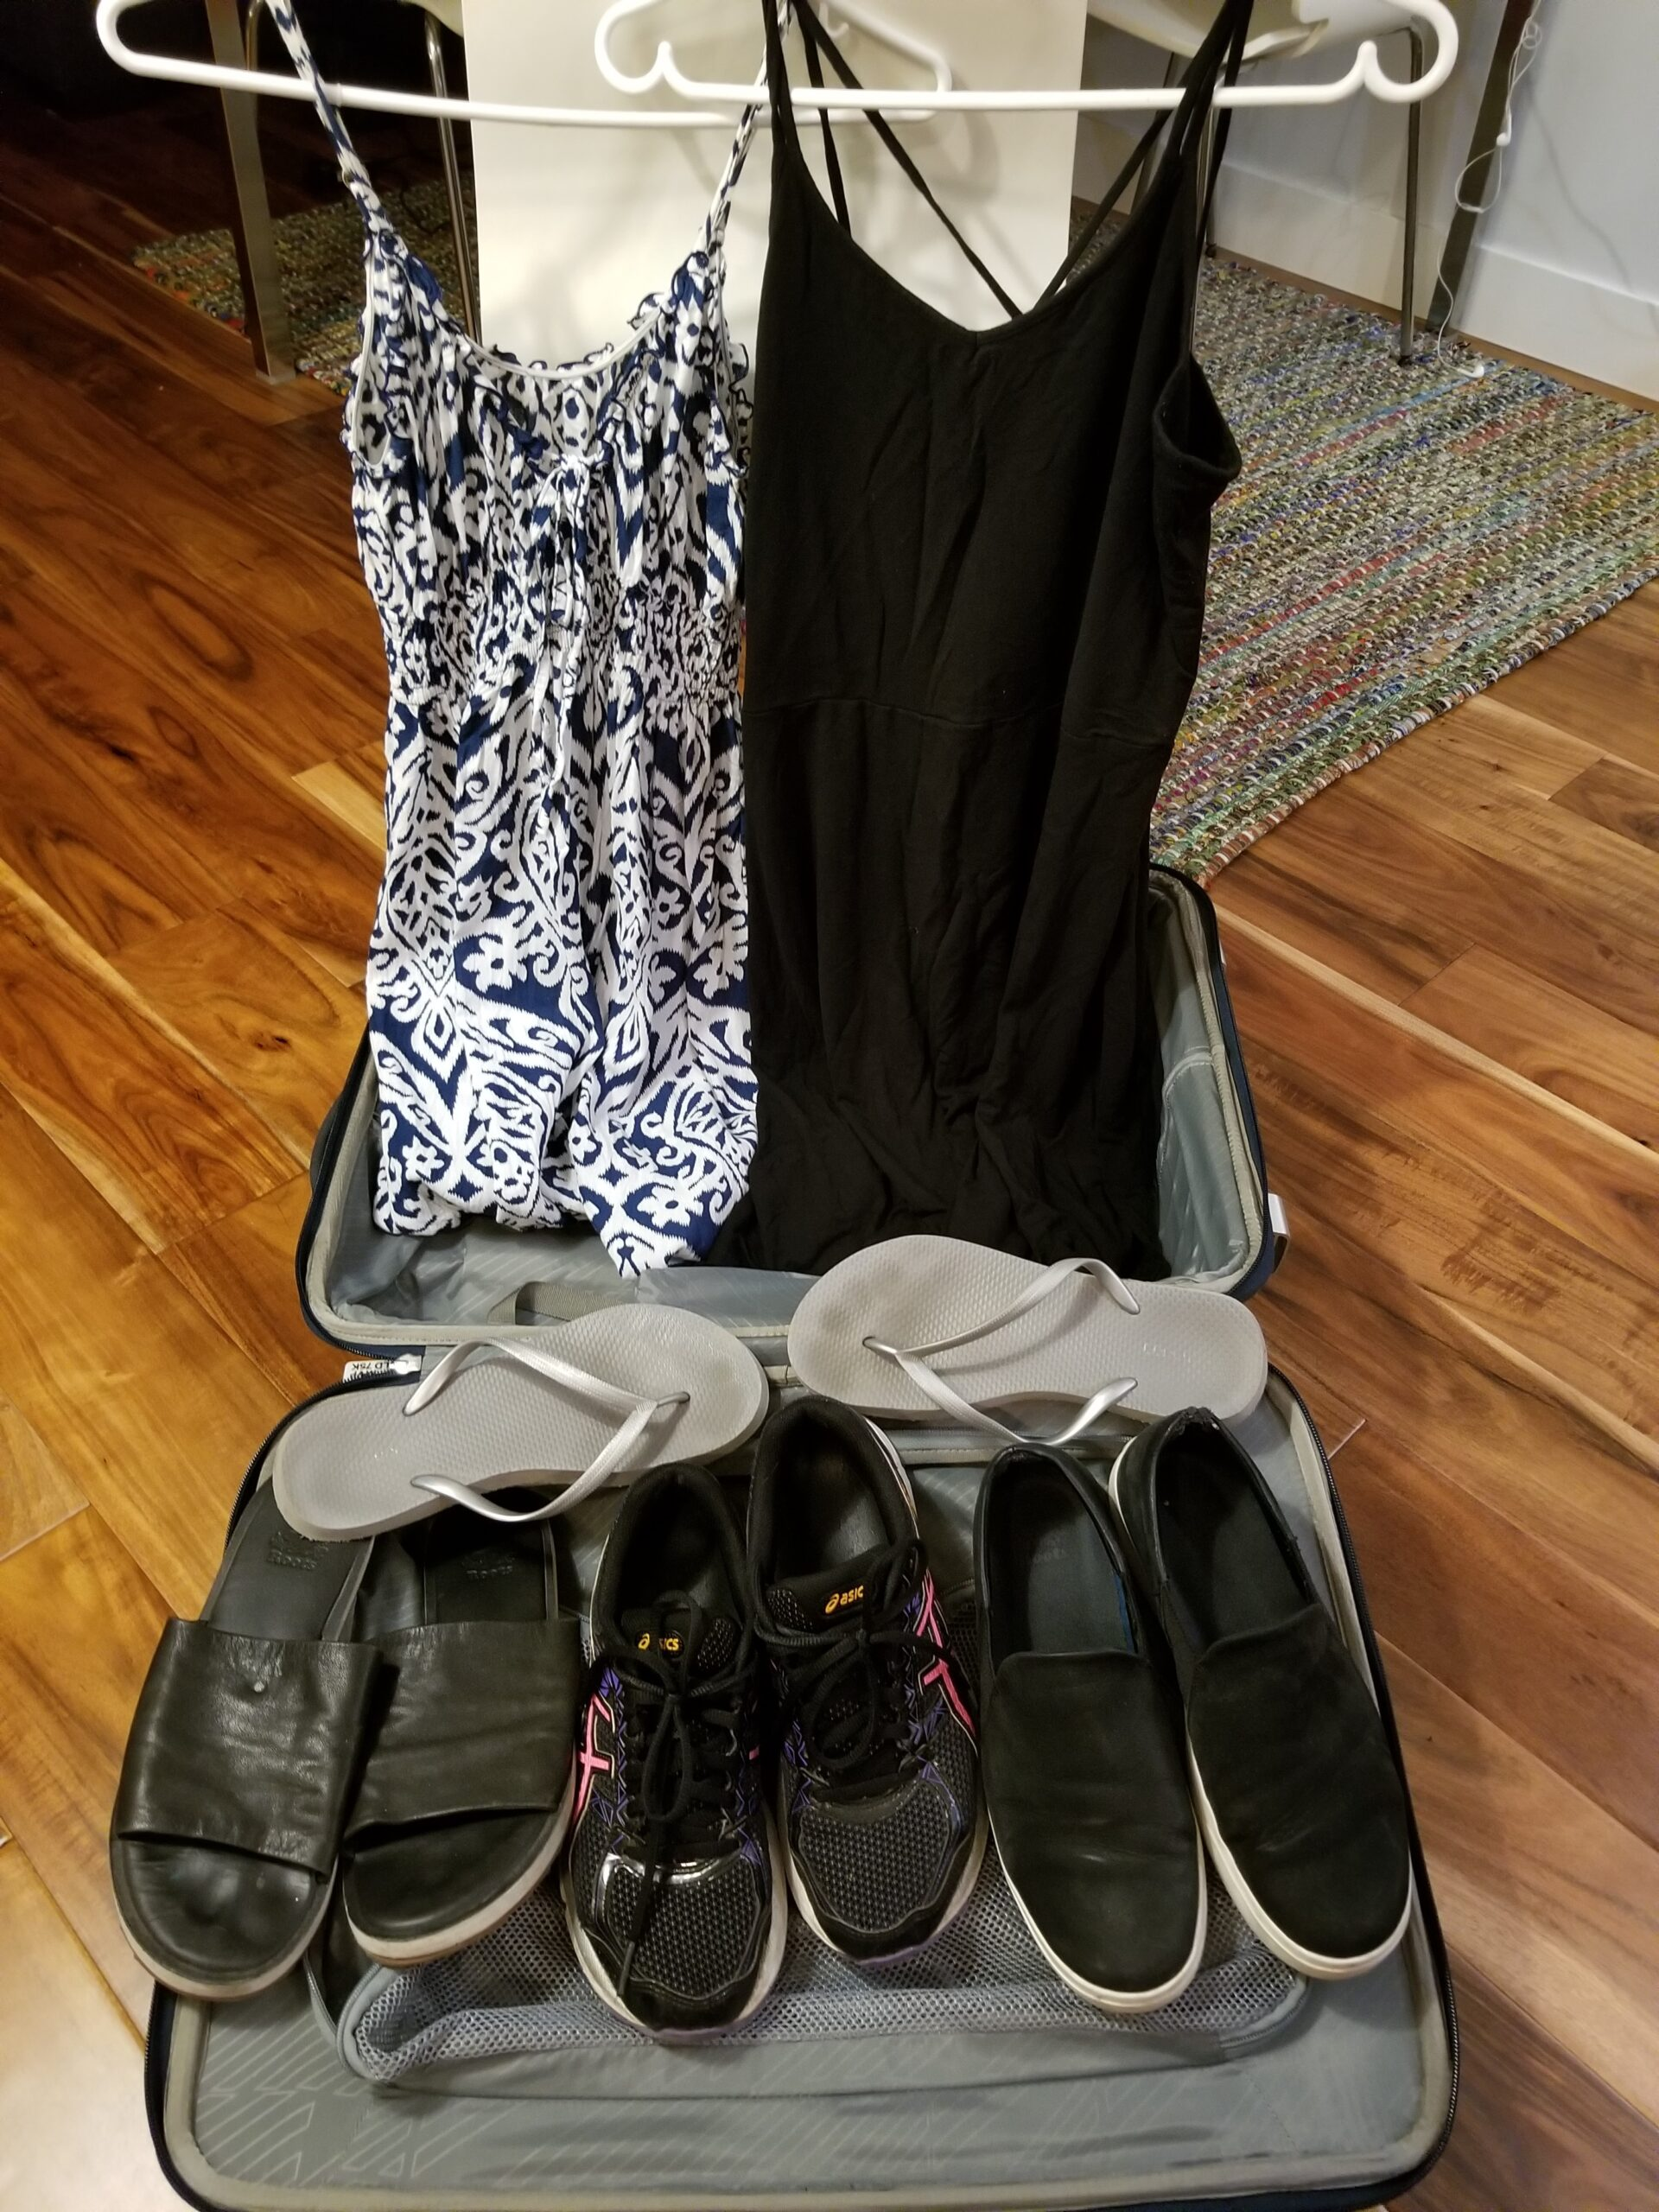 Around the World #6: The dressed and shoes Maxine packed